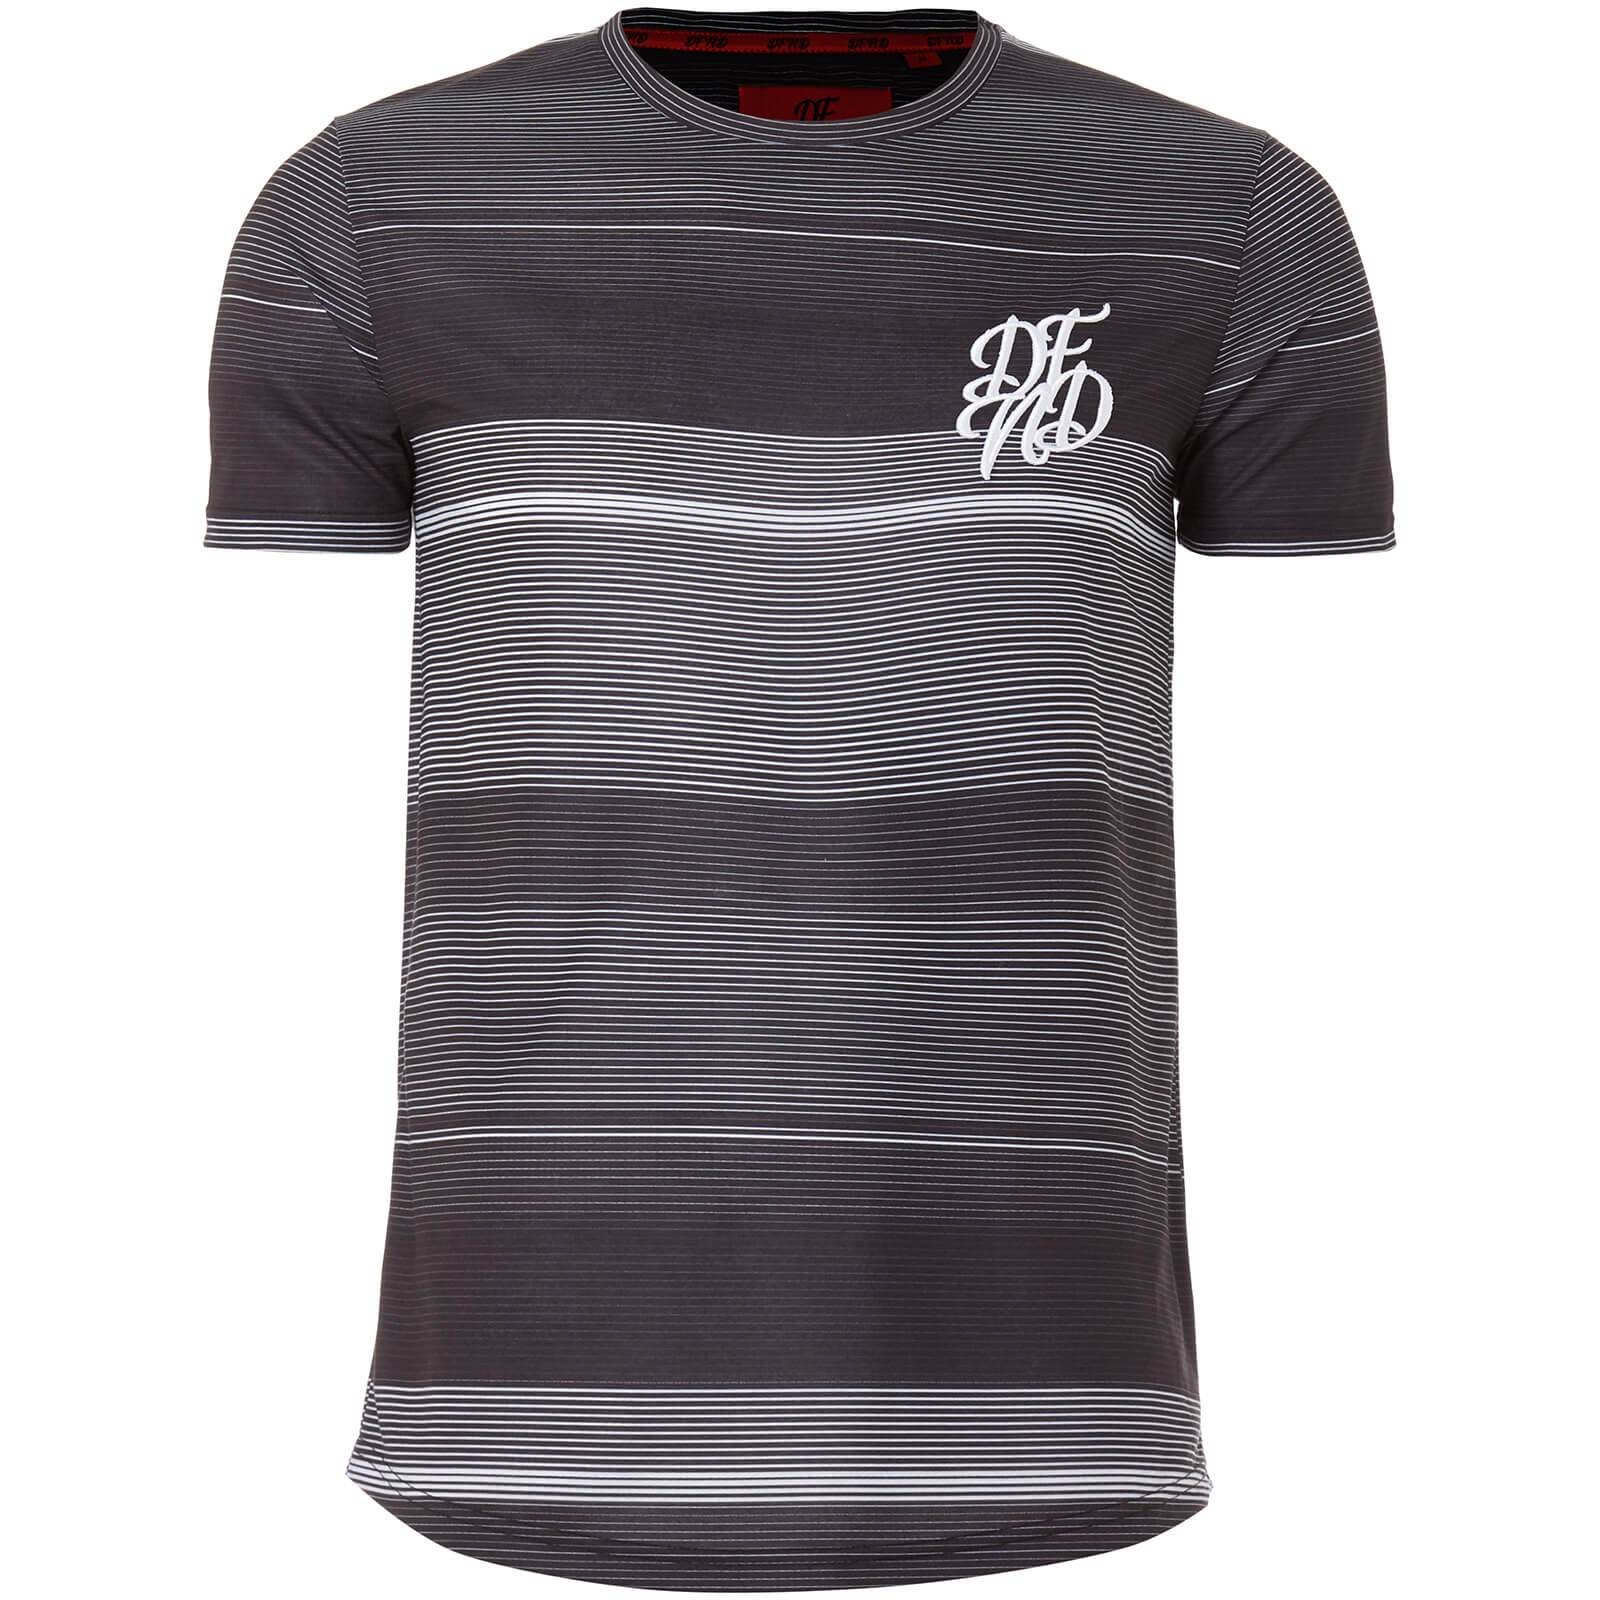 DFND Men's Flip T-Shirt - Black - S - Black